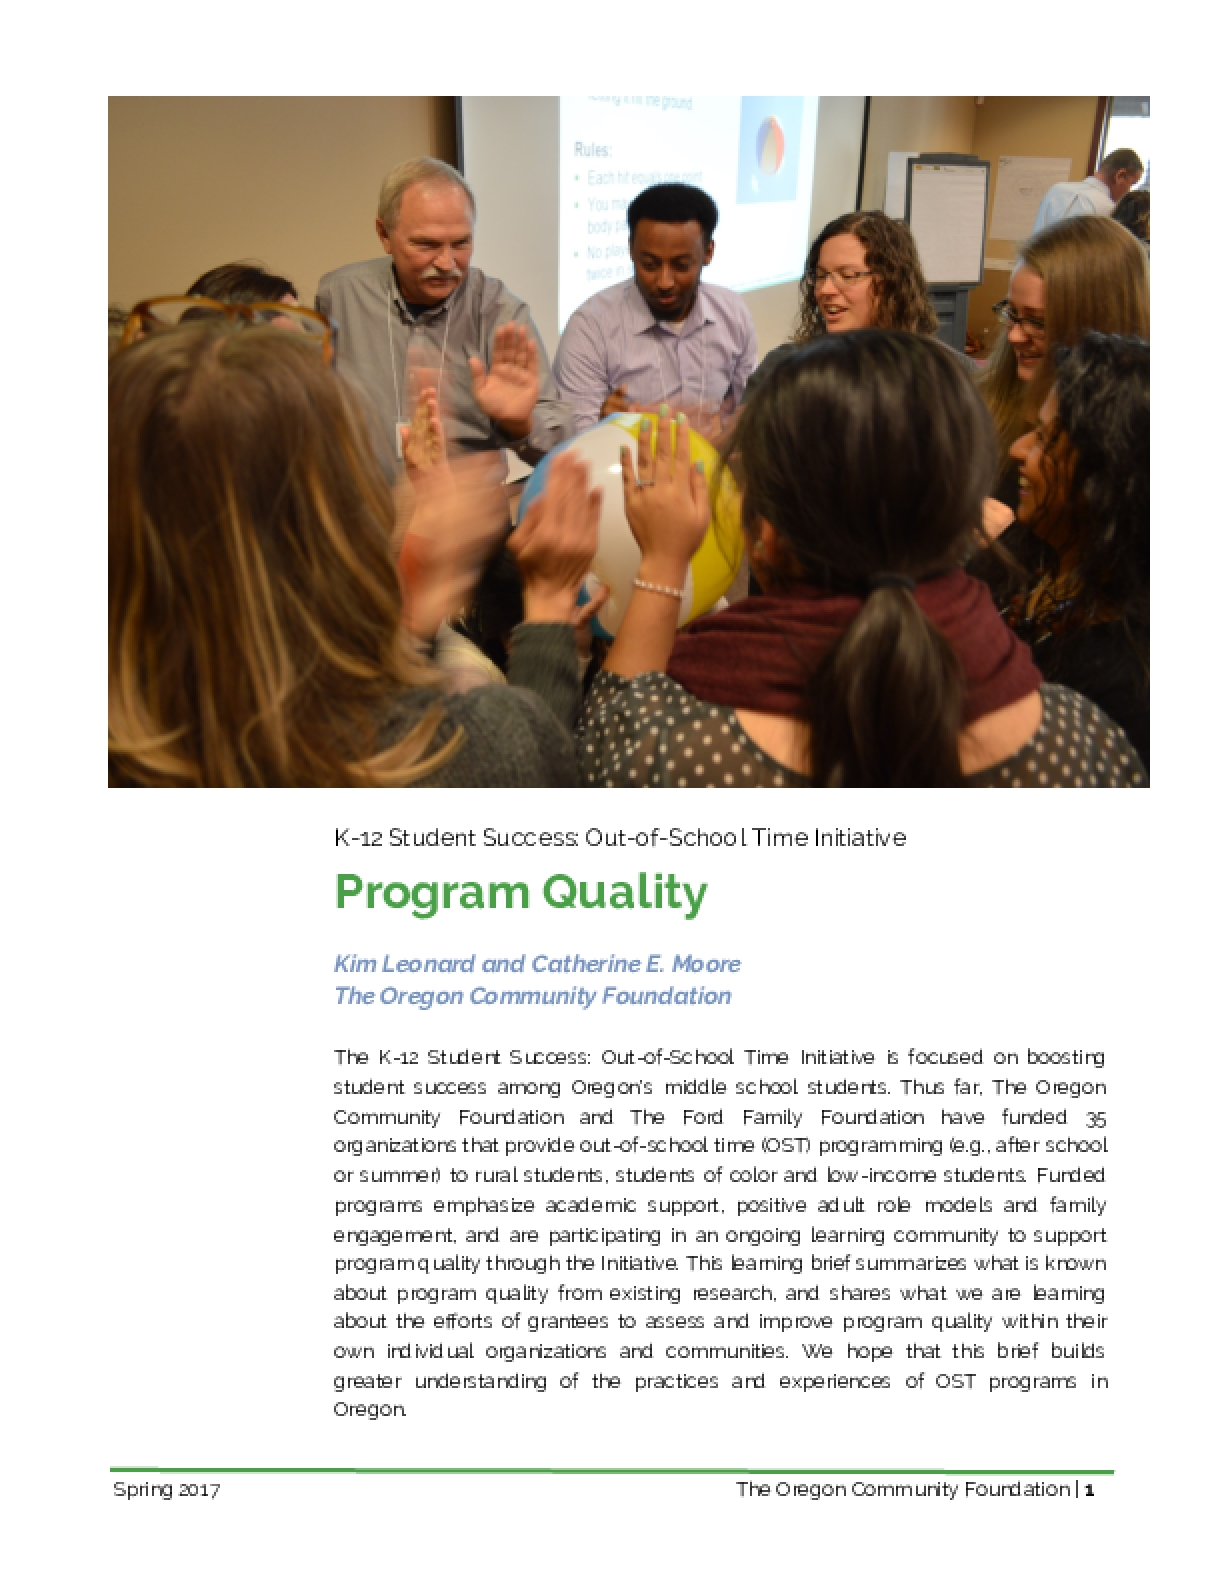 K-12 Student Success: Out-of-School Time Initiative Program Quality